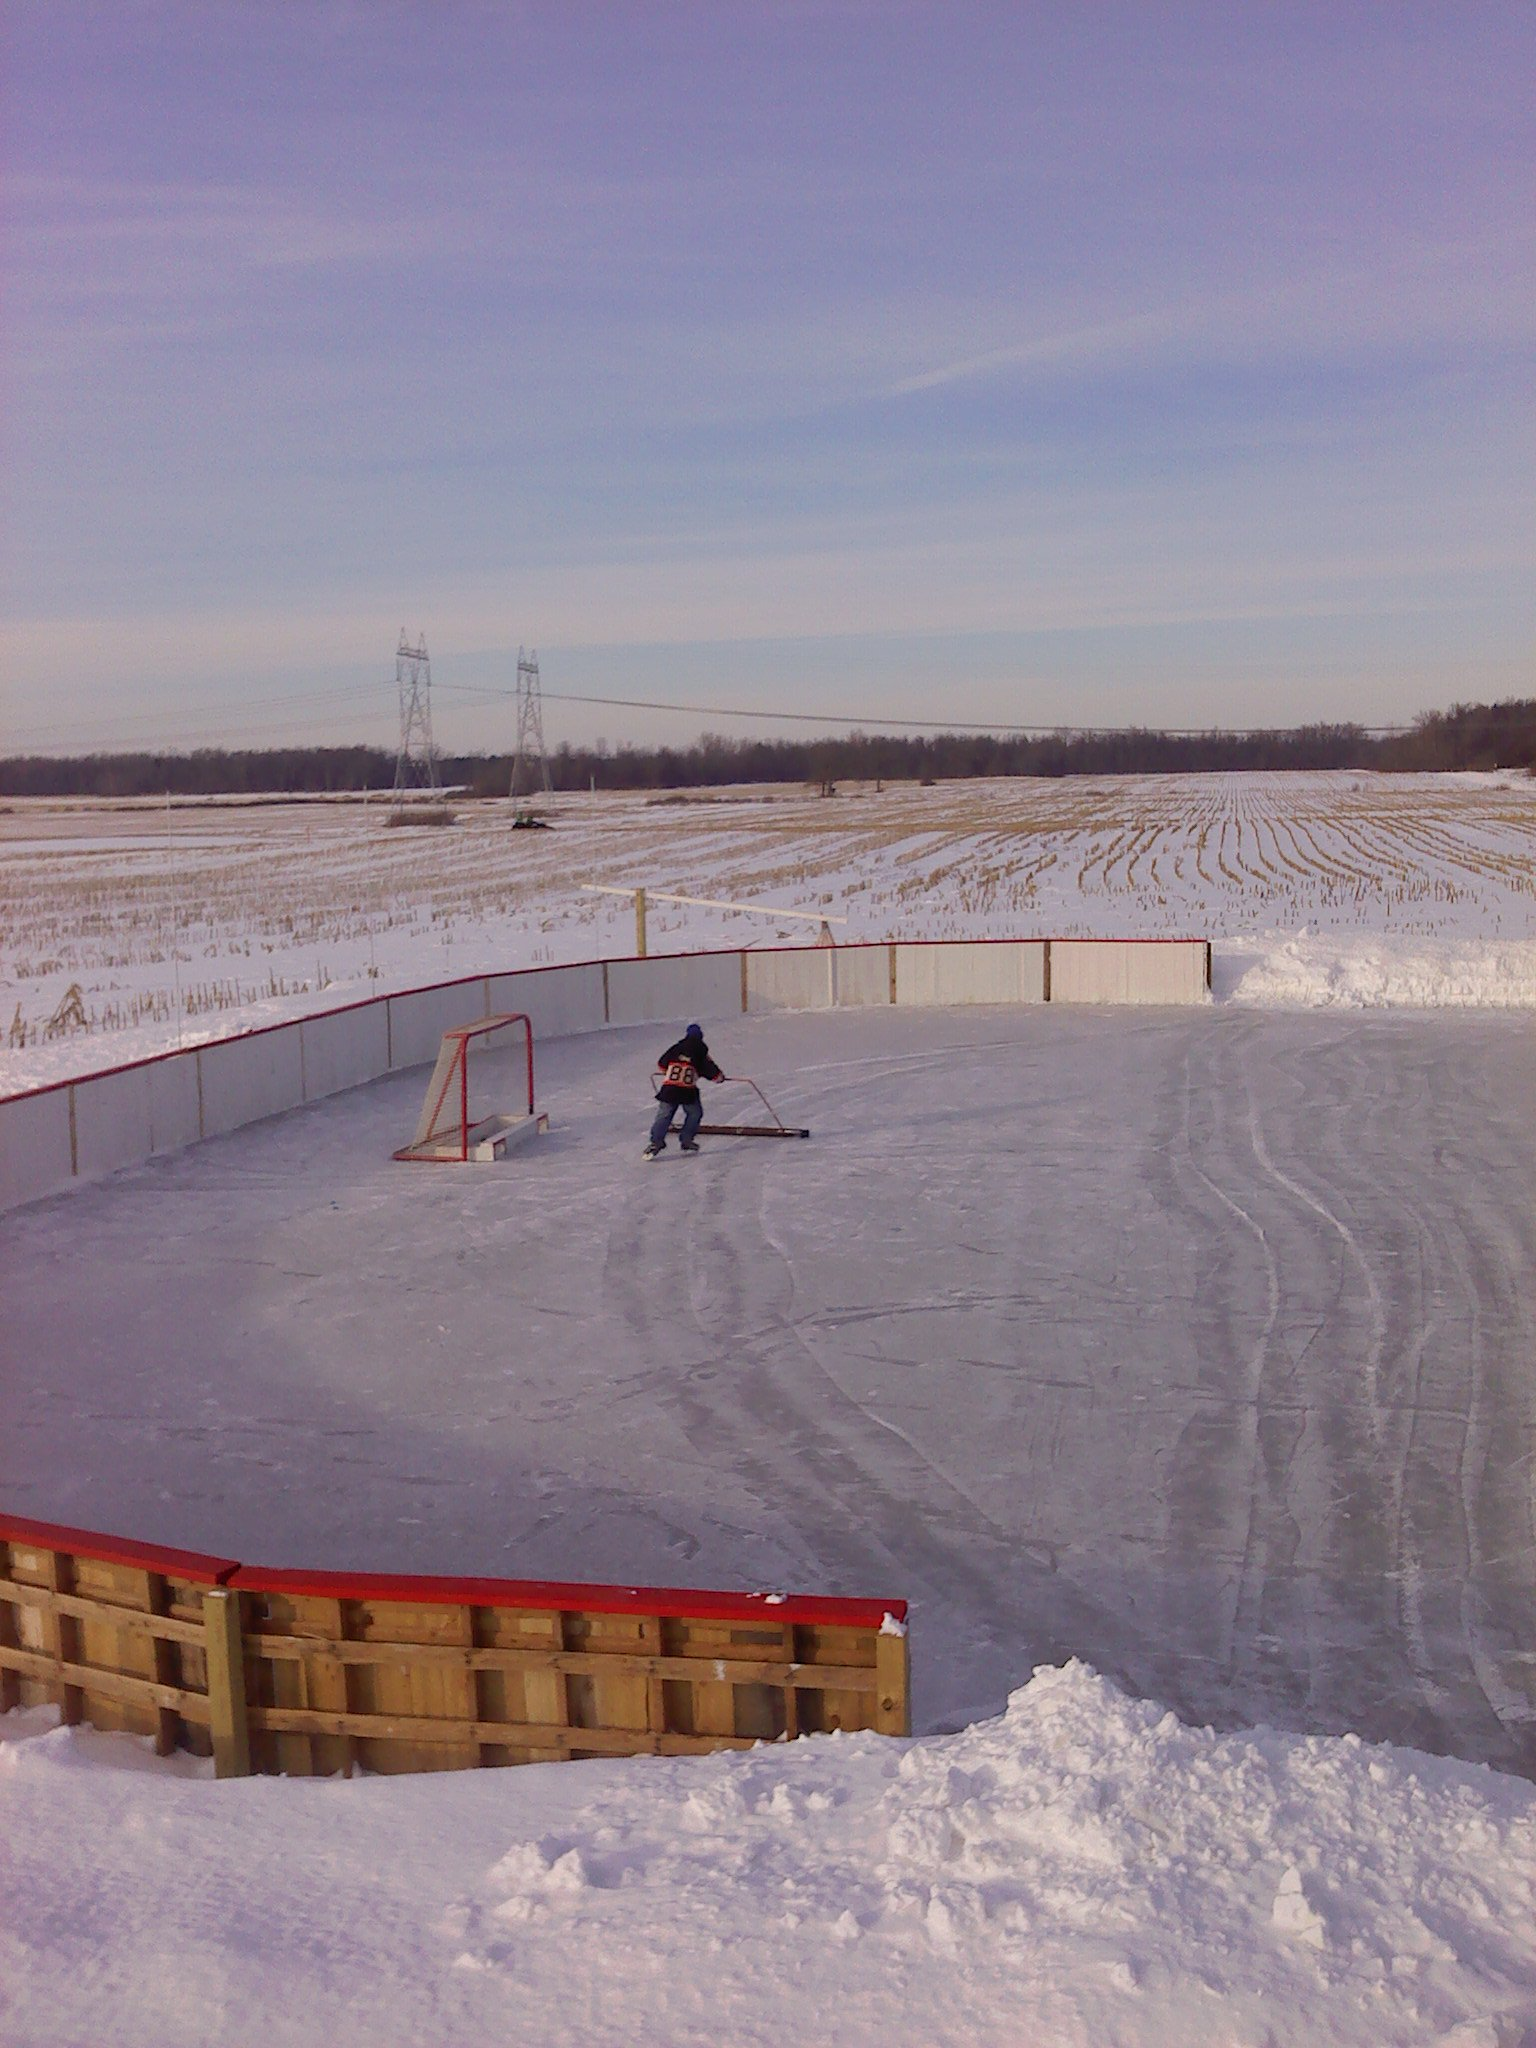 Backyard Ice Rinks Build a home ice rink and bring on the hockey